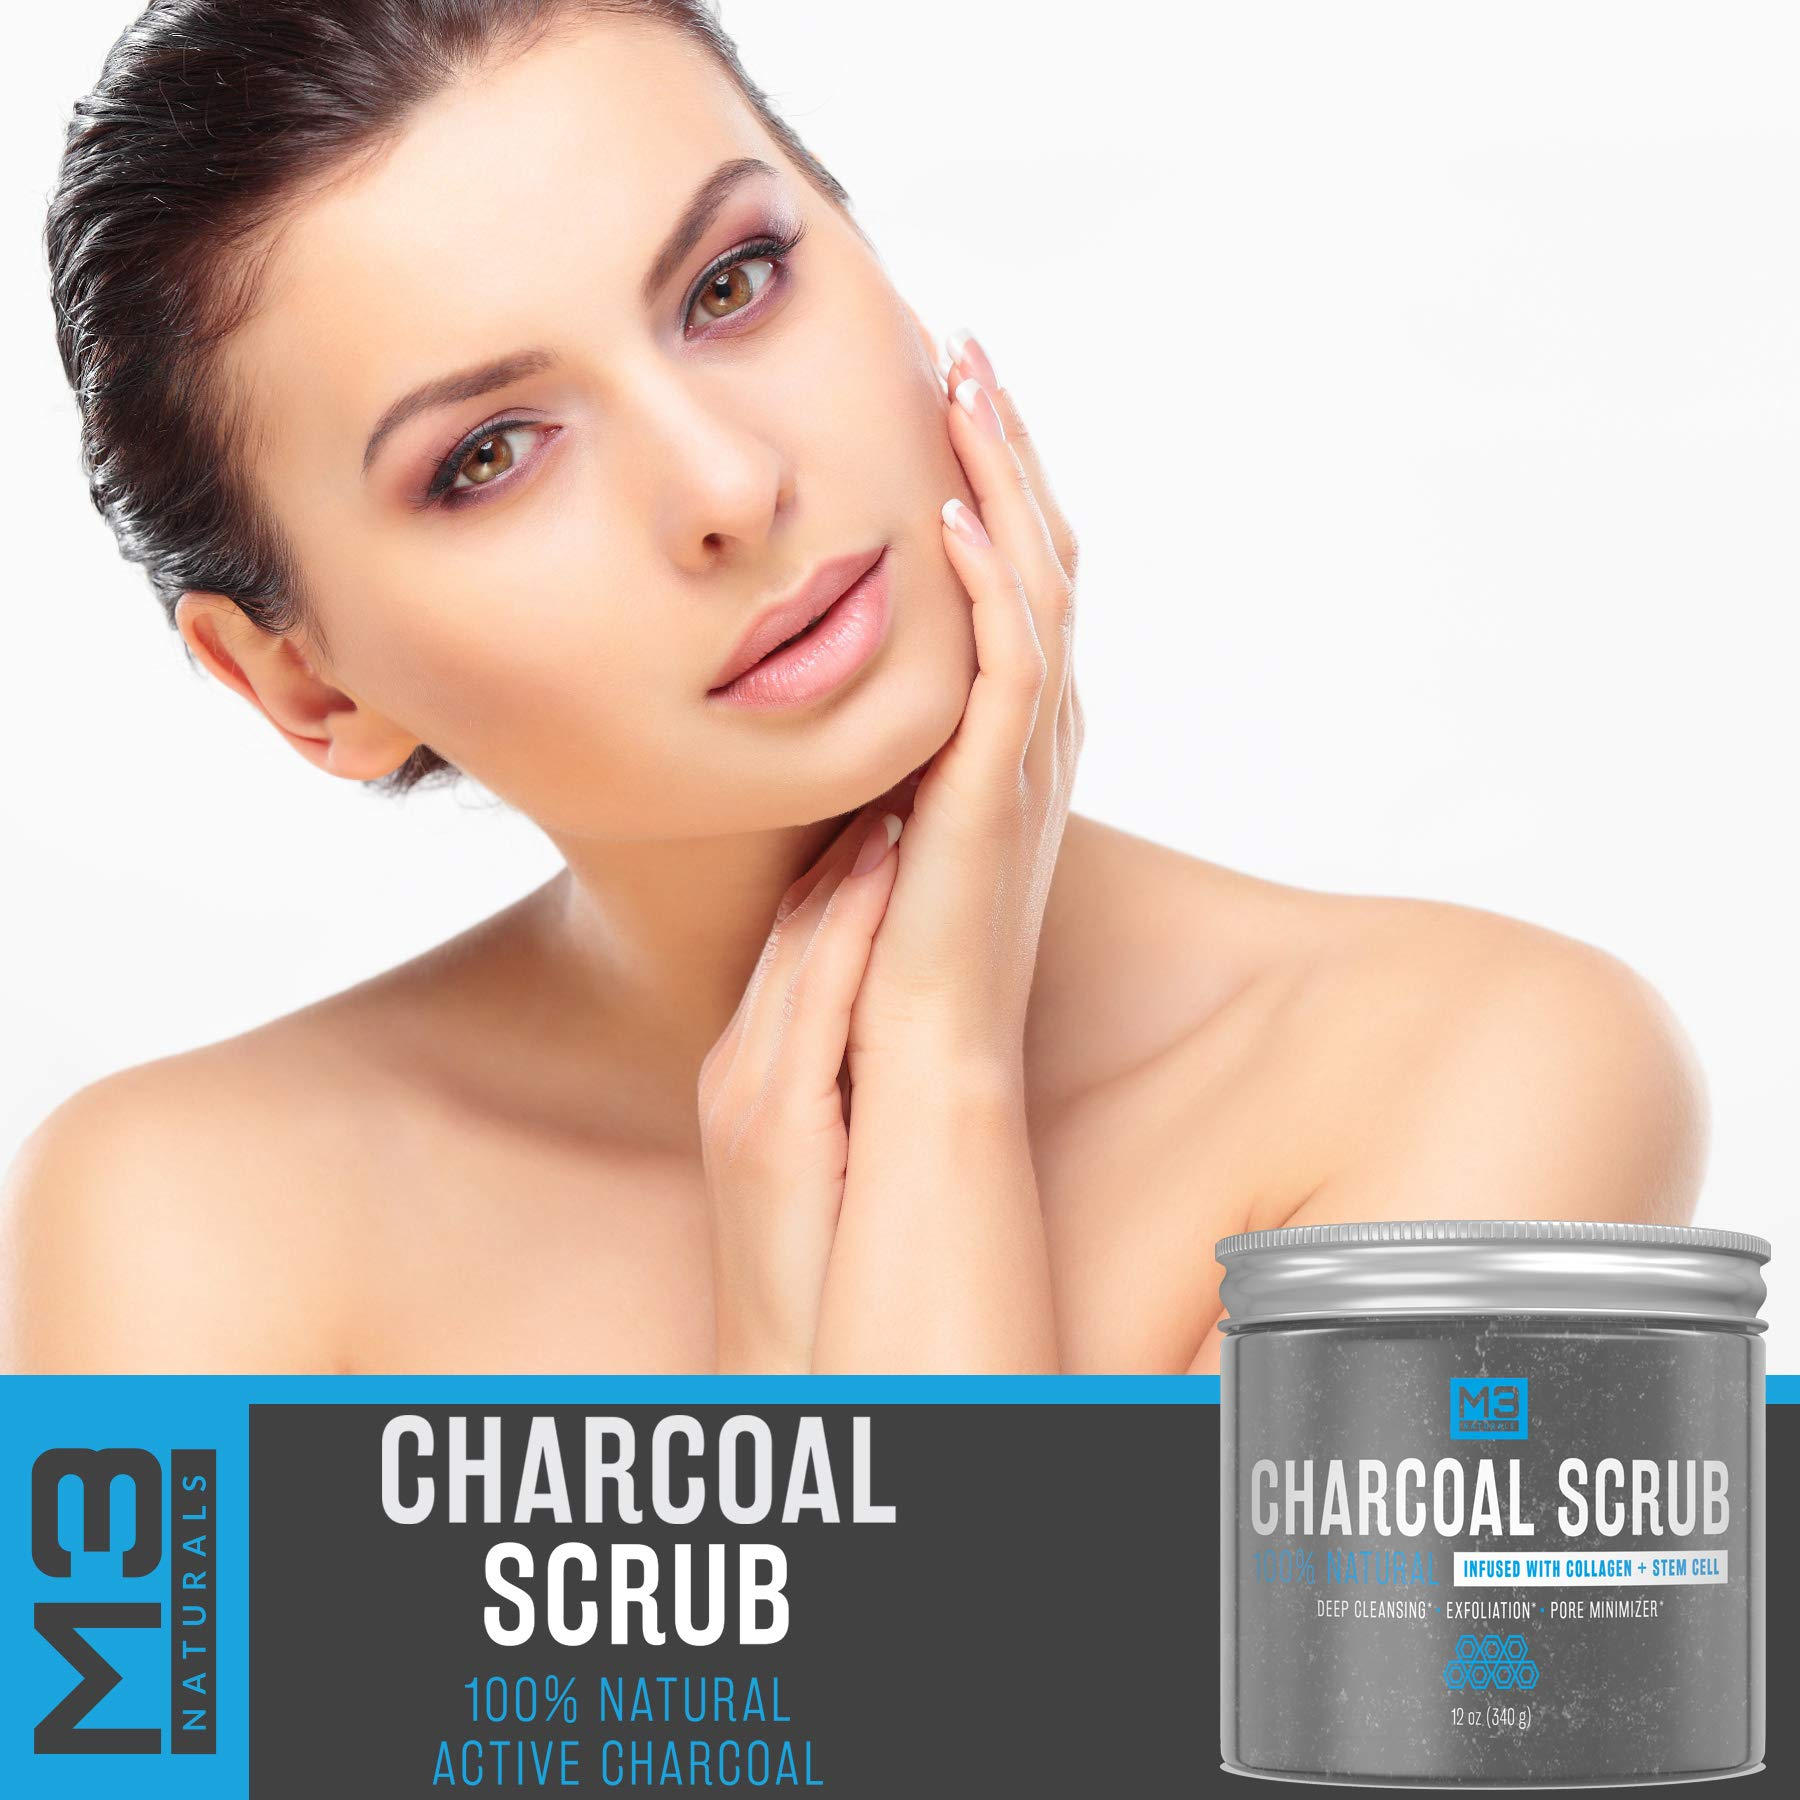 M3 Naturals Activated Charcoal Scrub Infused with Collagen & Stem Cell All Natural Body & Face Skin Care Exfoliating Blackheads Acne Scars Pore Minimizer Reduces Wrinkles Anti Cellulite12 OZ by M3 Naturals (Image #8)